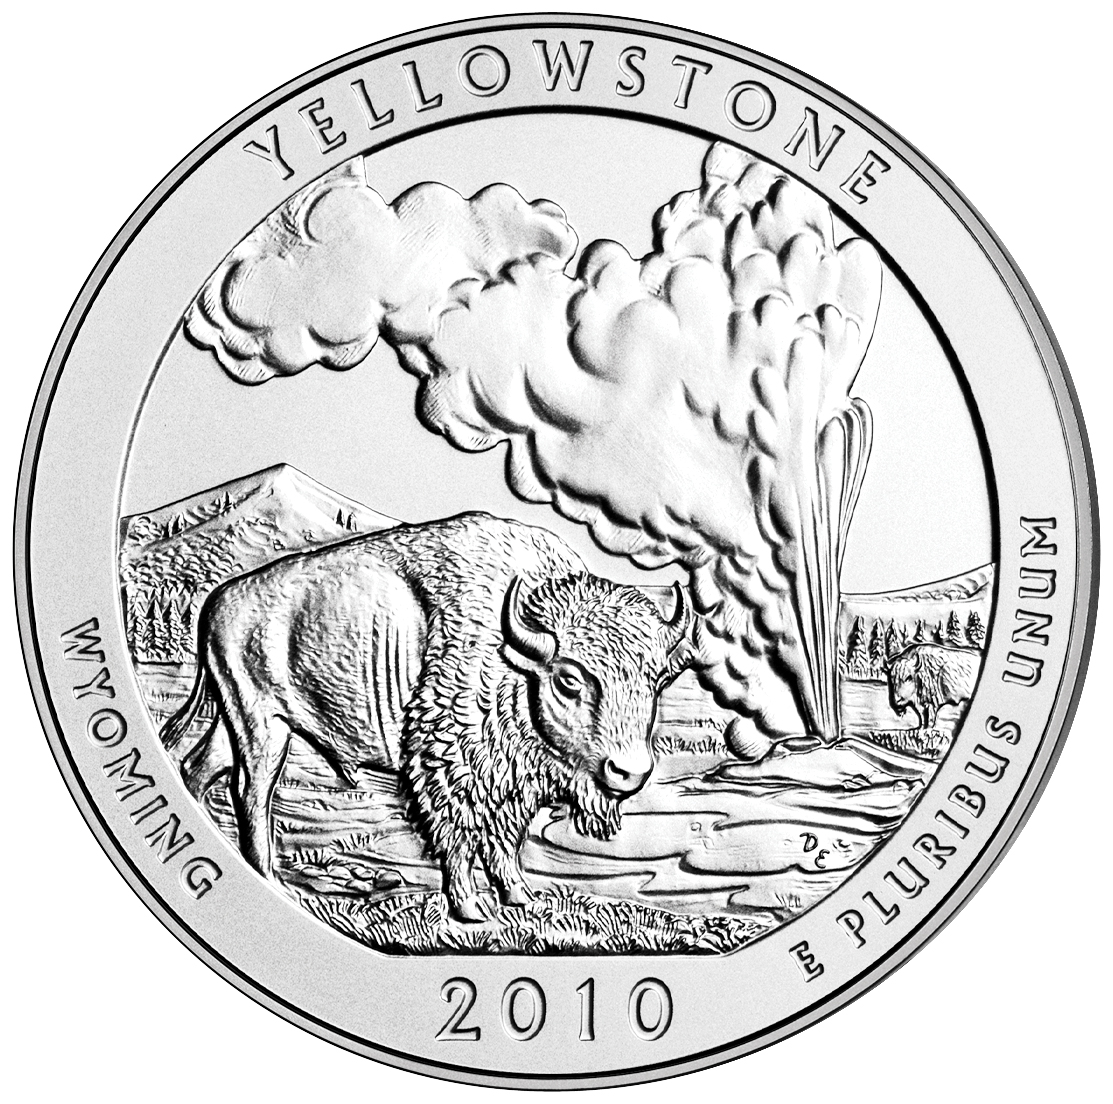 2010 America The Beautiful Quarters Five Ounce Silver Uncirculated Coin Yellowstone Wyoming Reverse